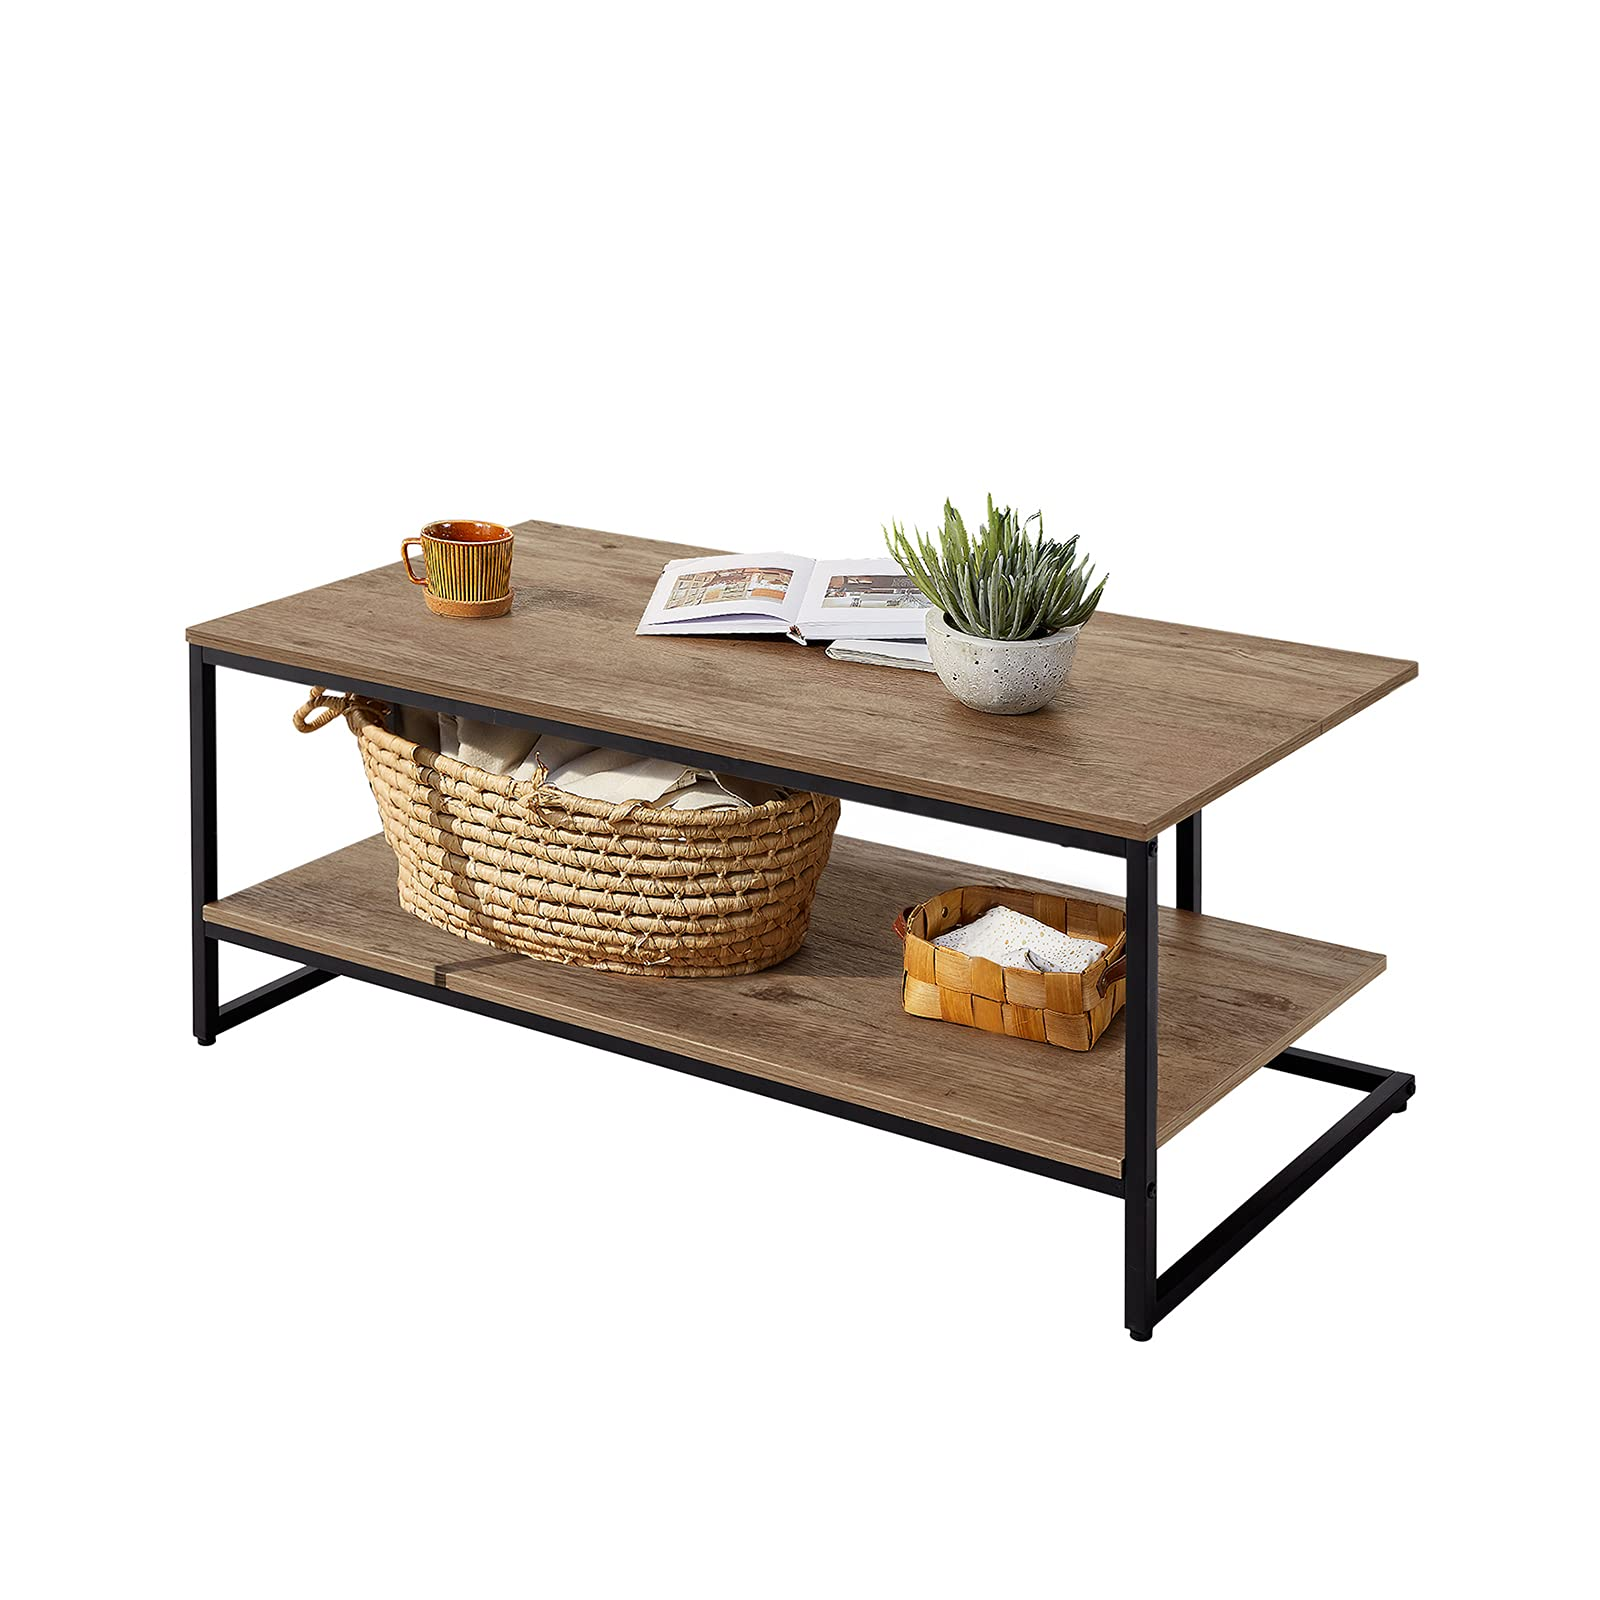 LINSY HOME 2-Tier Coffee Table p Design Wooden Rectangular Sofa Table with